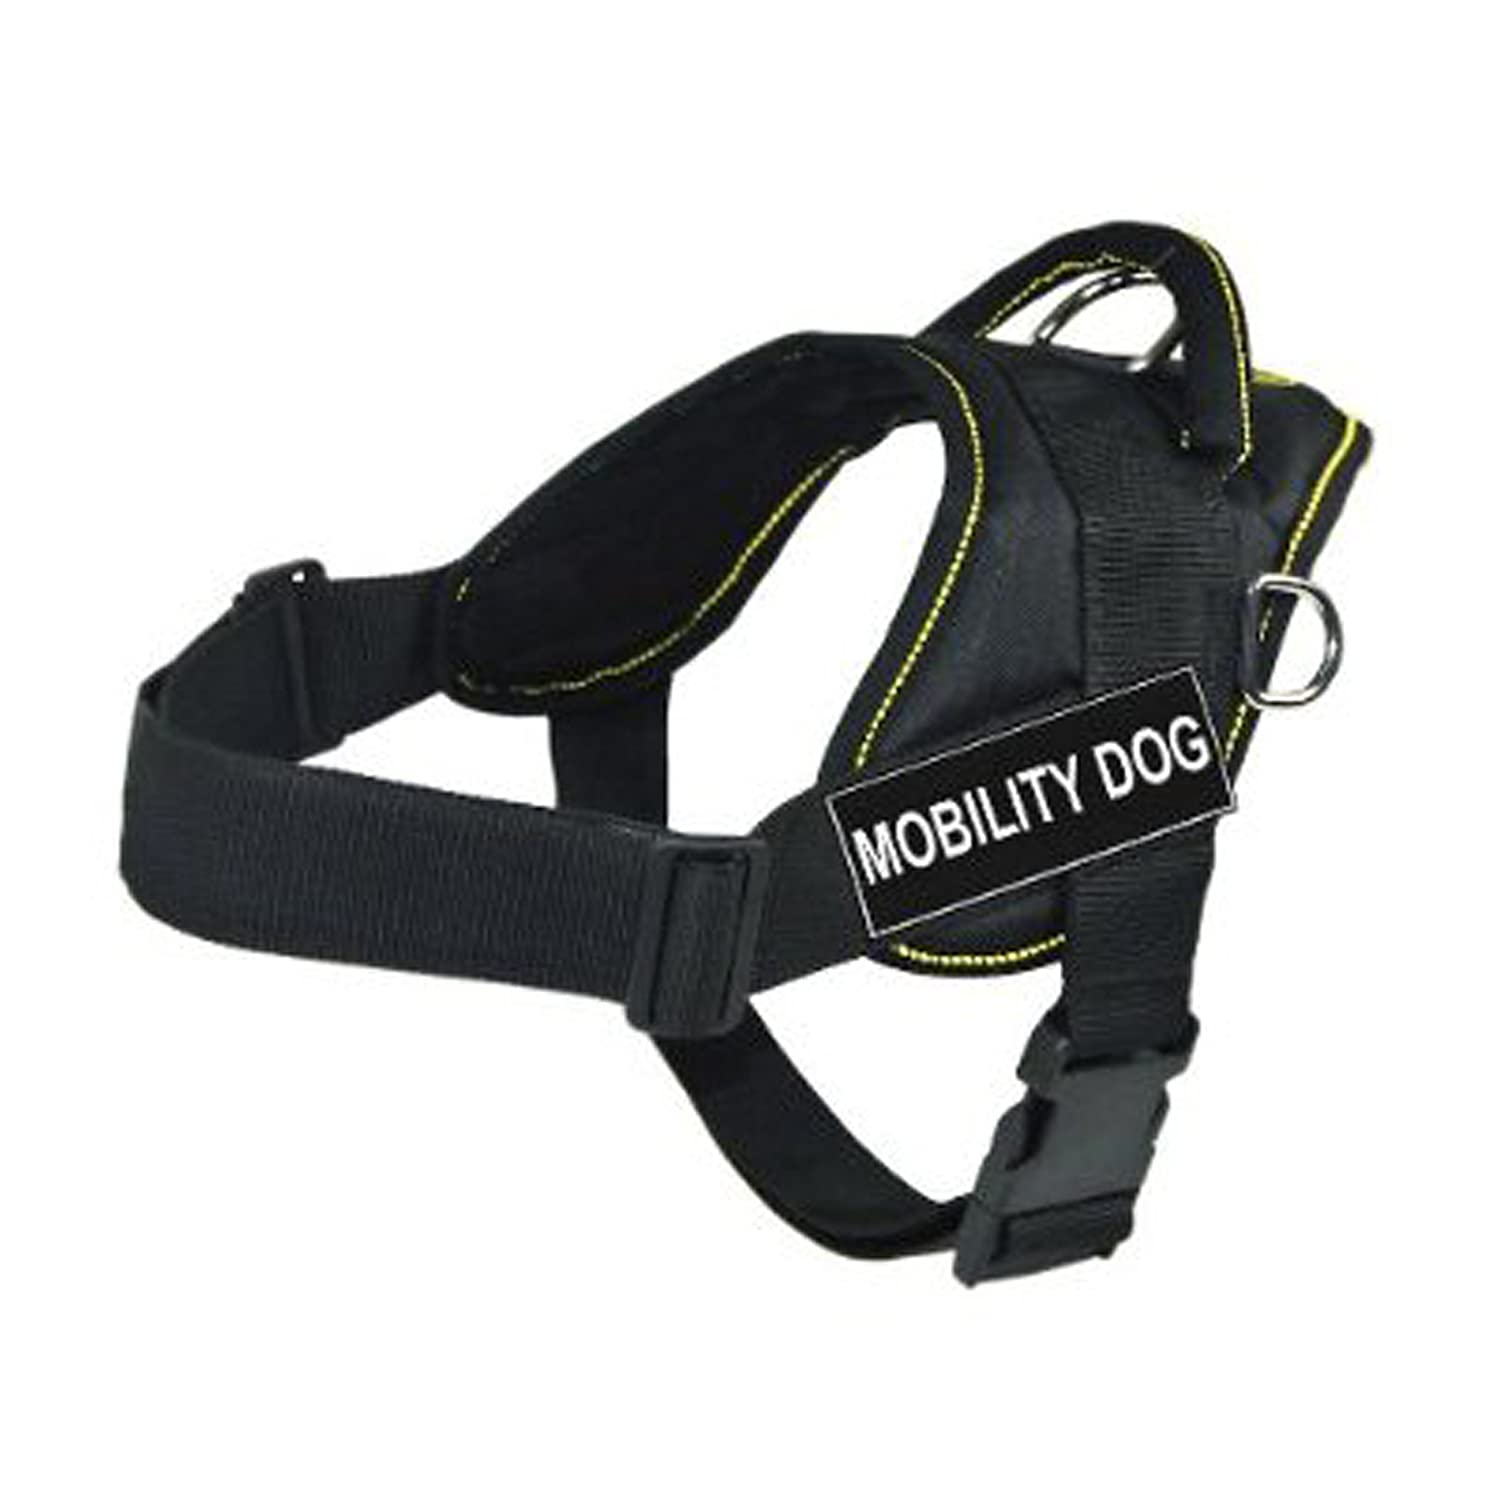 Dean & Tyler Fun Works Harness, Mobility Dog, Black with Yellow Trim, Medium, Fits Girth Size  28-Inch to 34-Inch